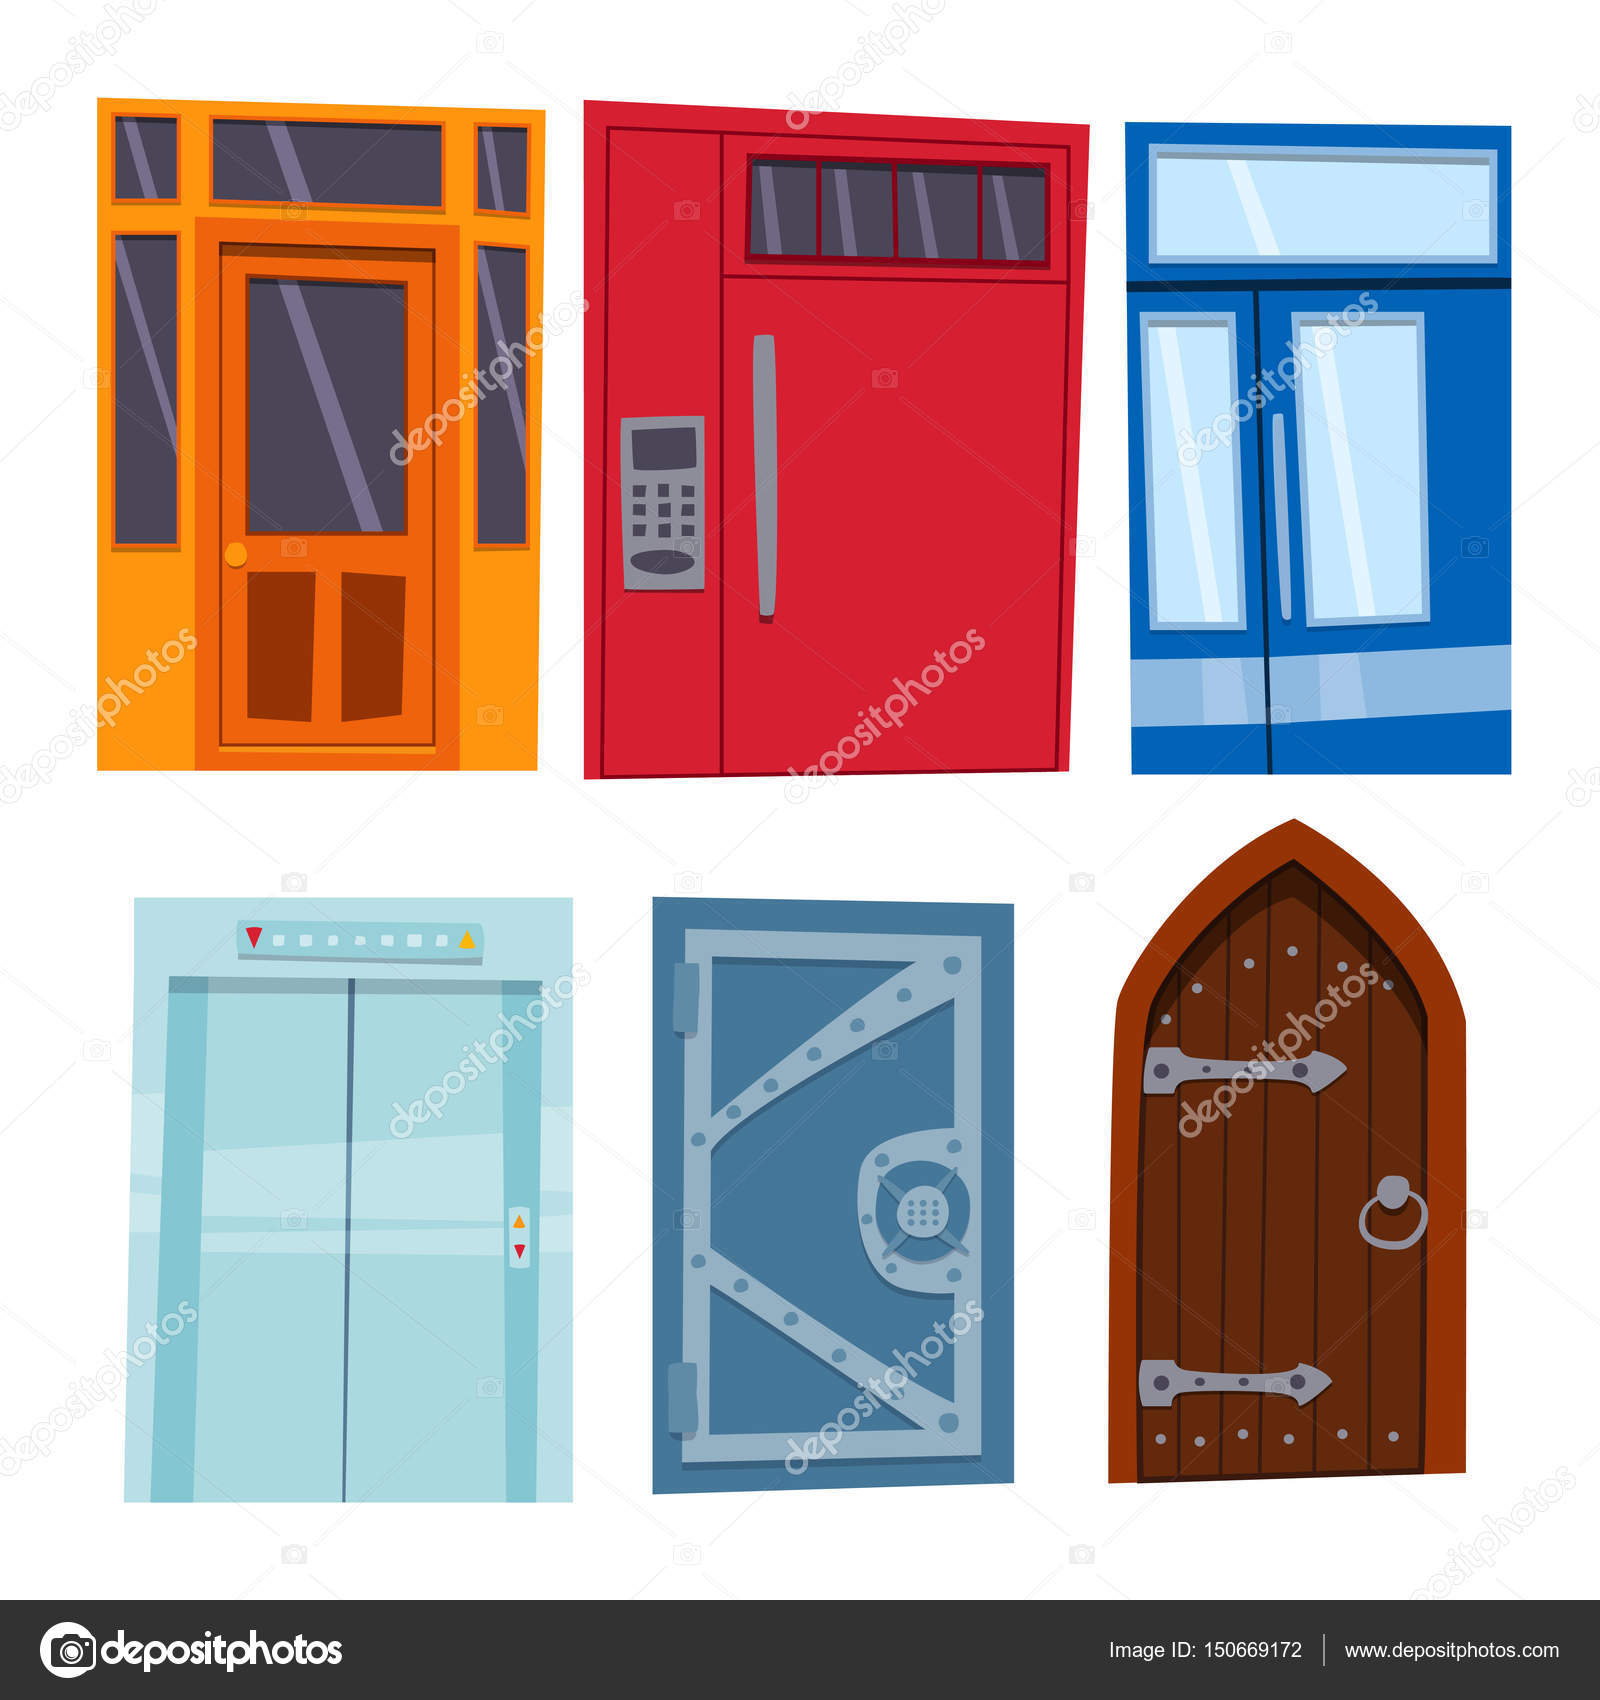 Color door front to house and building flat design style isolated